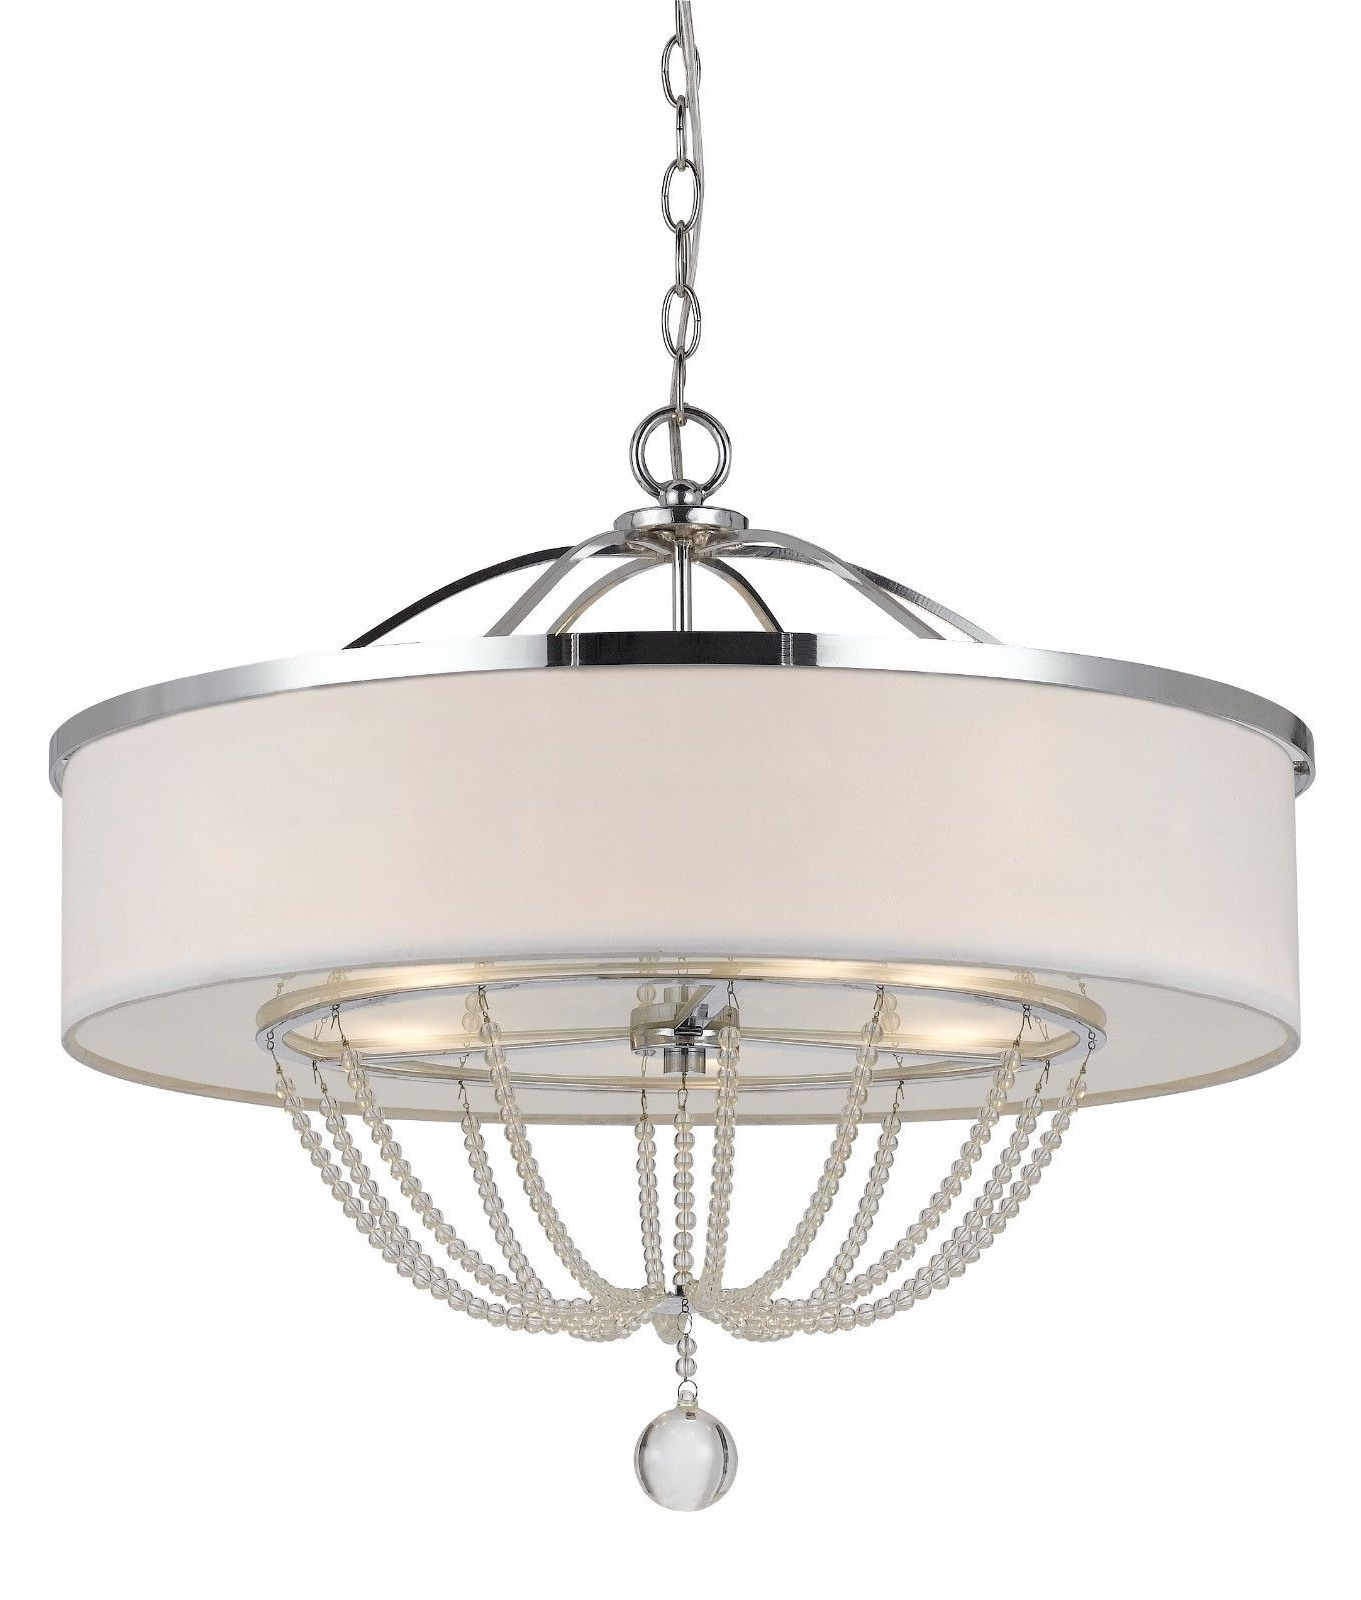 Modern White Fabric With Chrome Metal & Crystals Drum Pendant Light Throughout Well Liked Modern Chrome Chandeliers (View 13 of 20)